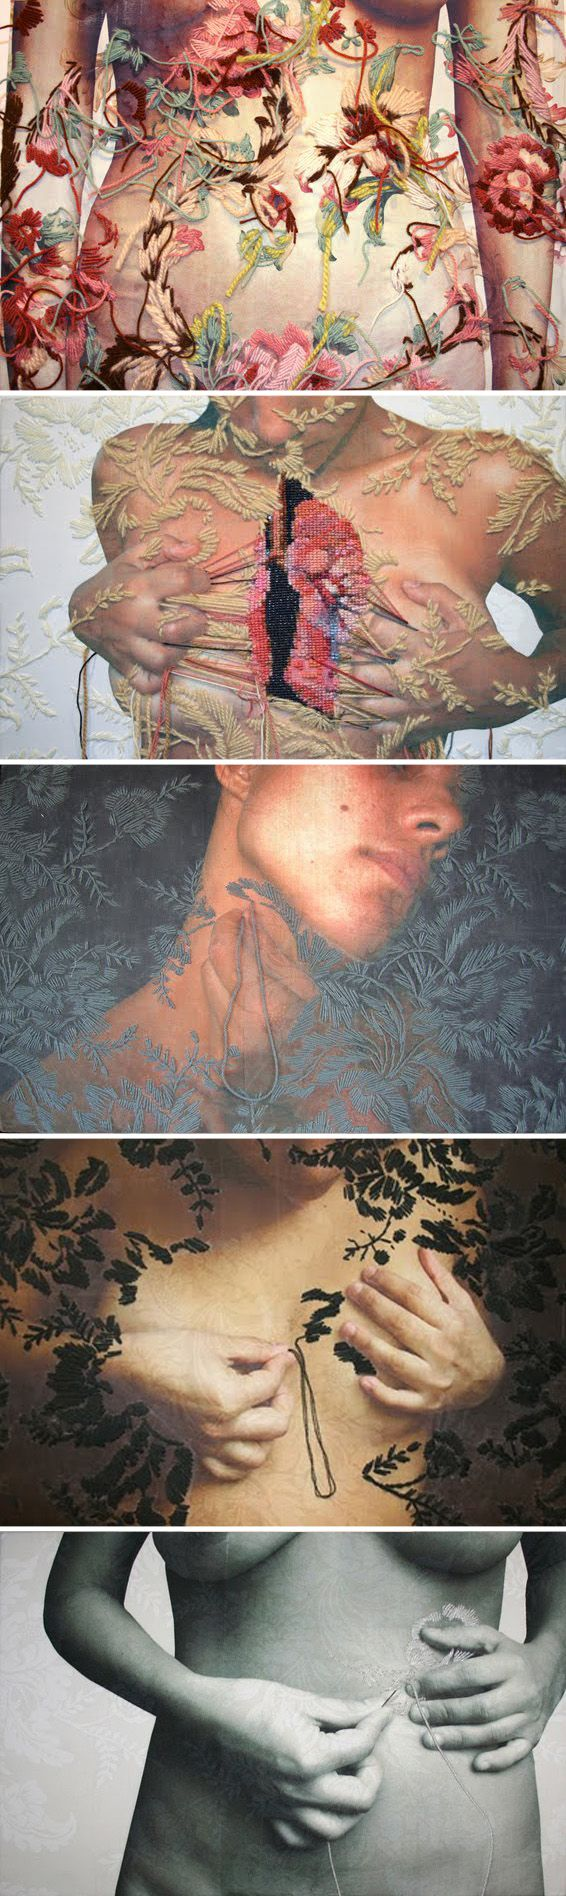 KAYLEIGH  22nd January: Another artist I've looked closely at is Ana Teresa Barboza embroidery and her relationship between human skin and embroidery.